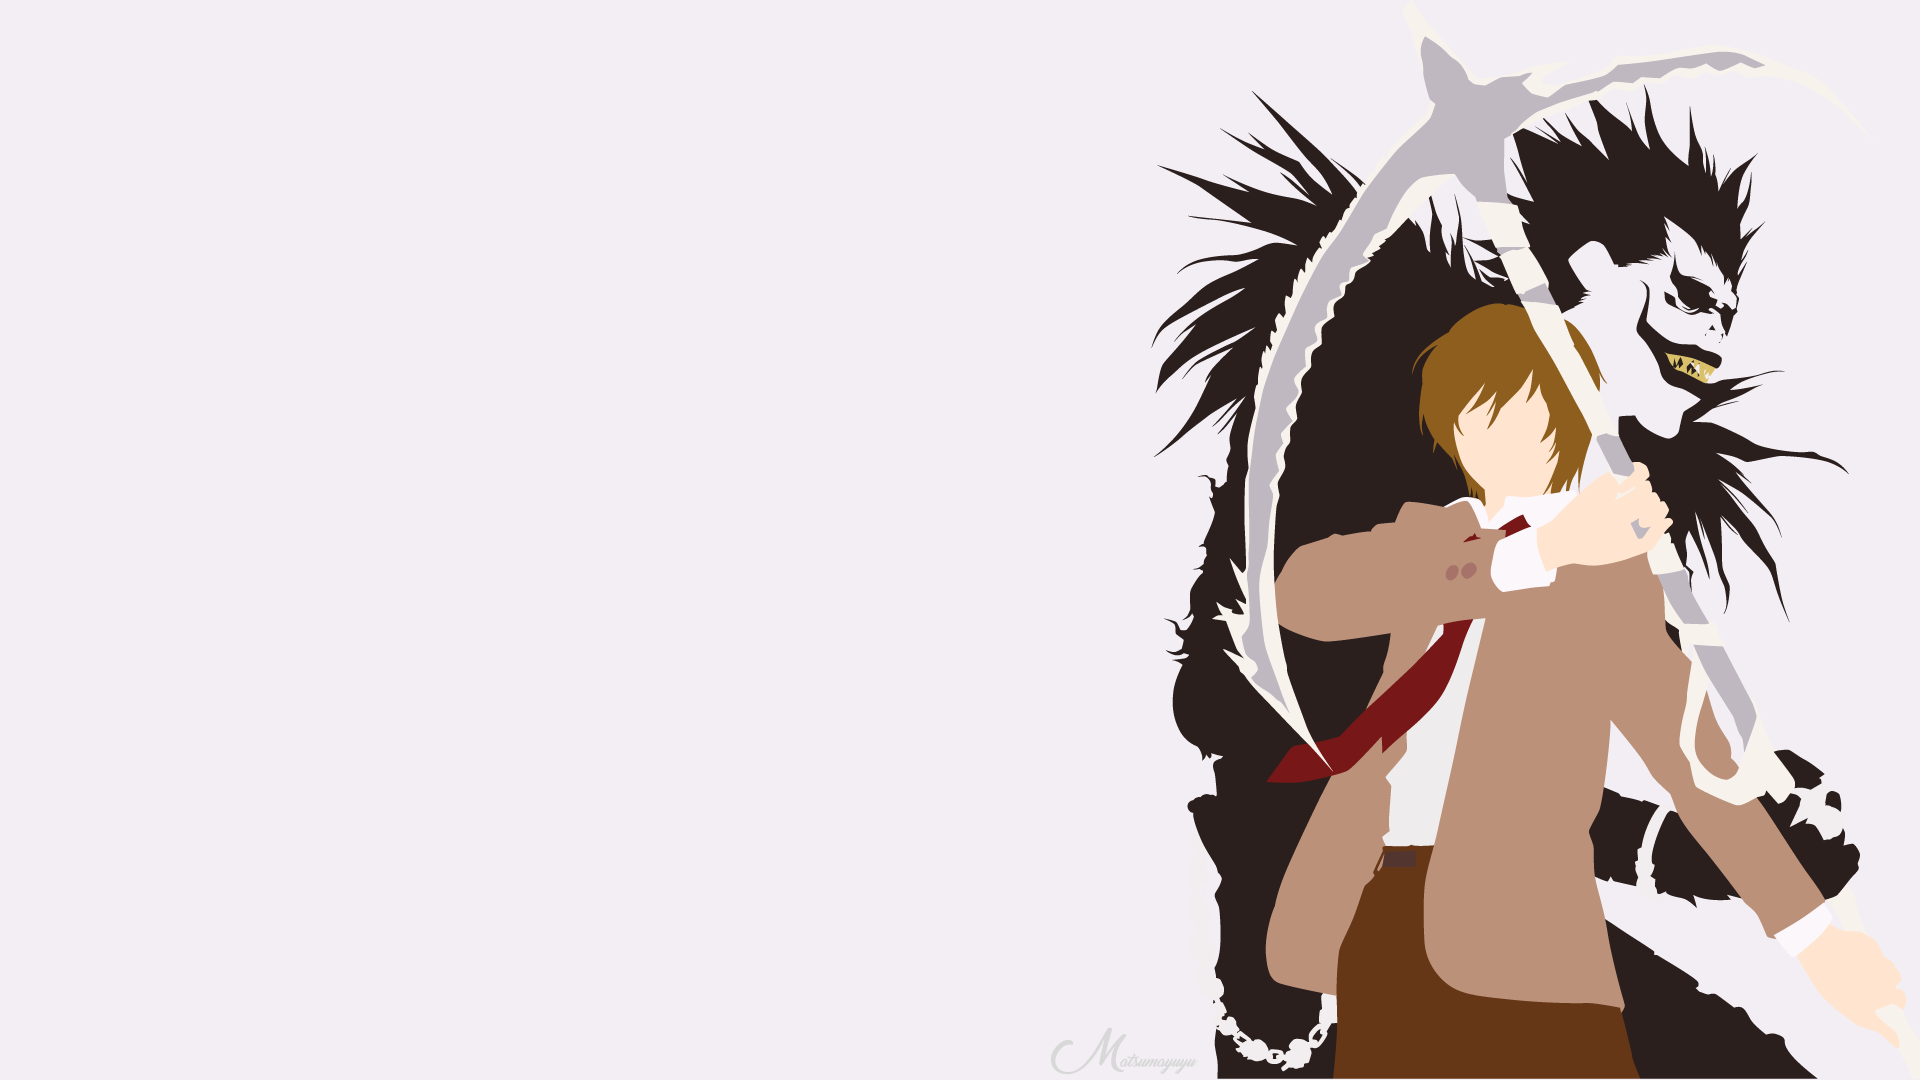 light and ryuk wallpaper - photo #19